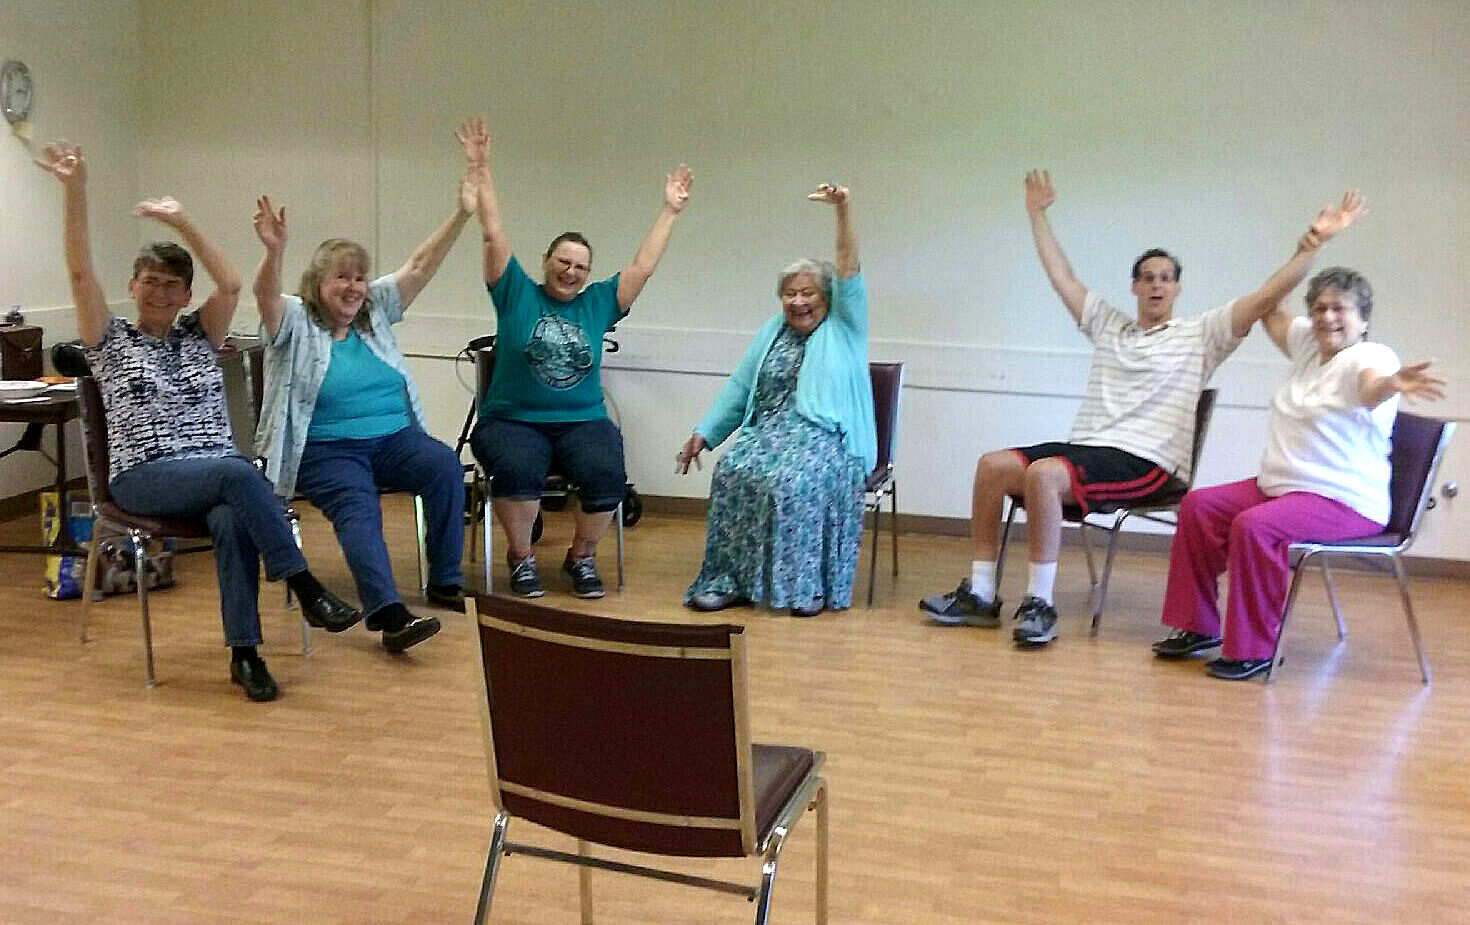 on chair dance cheap table and chairs exercise while recovering from surgery 16 6 class a jpg